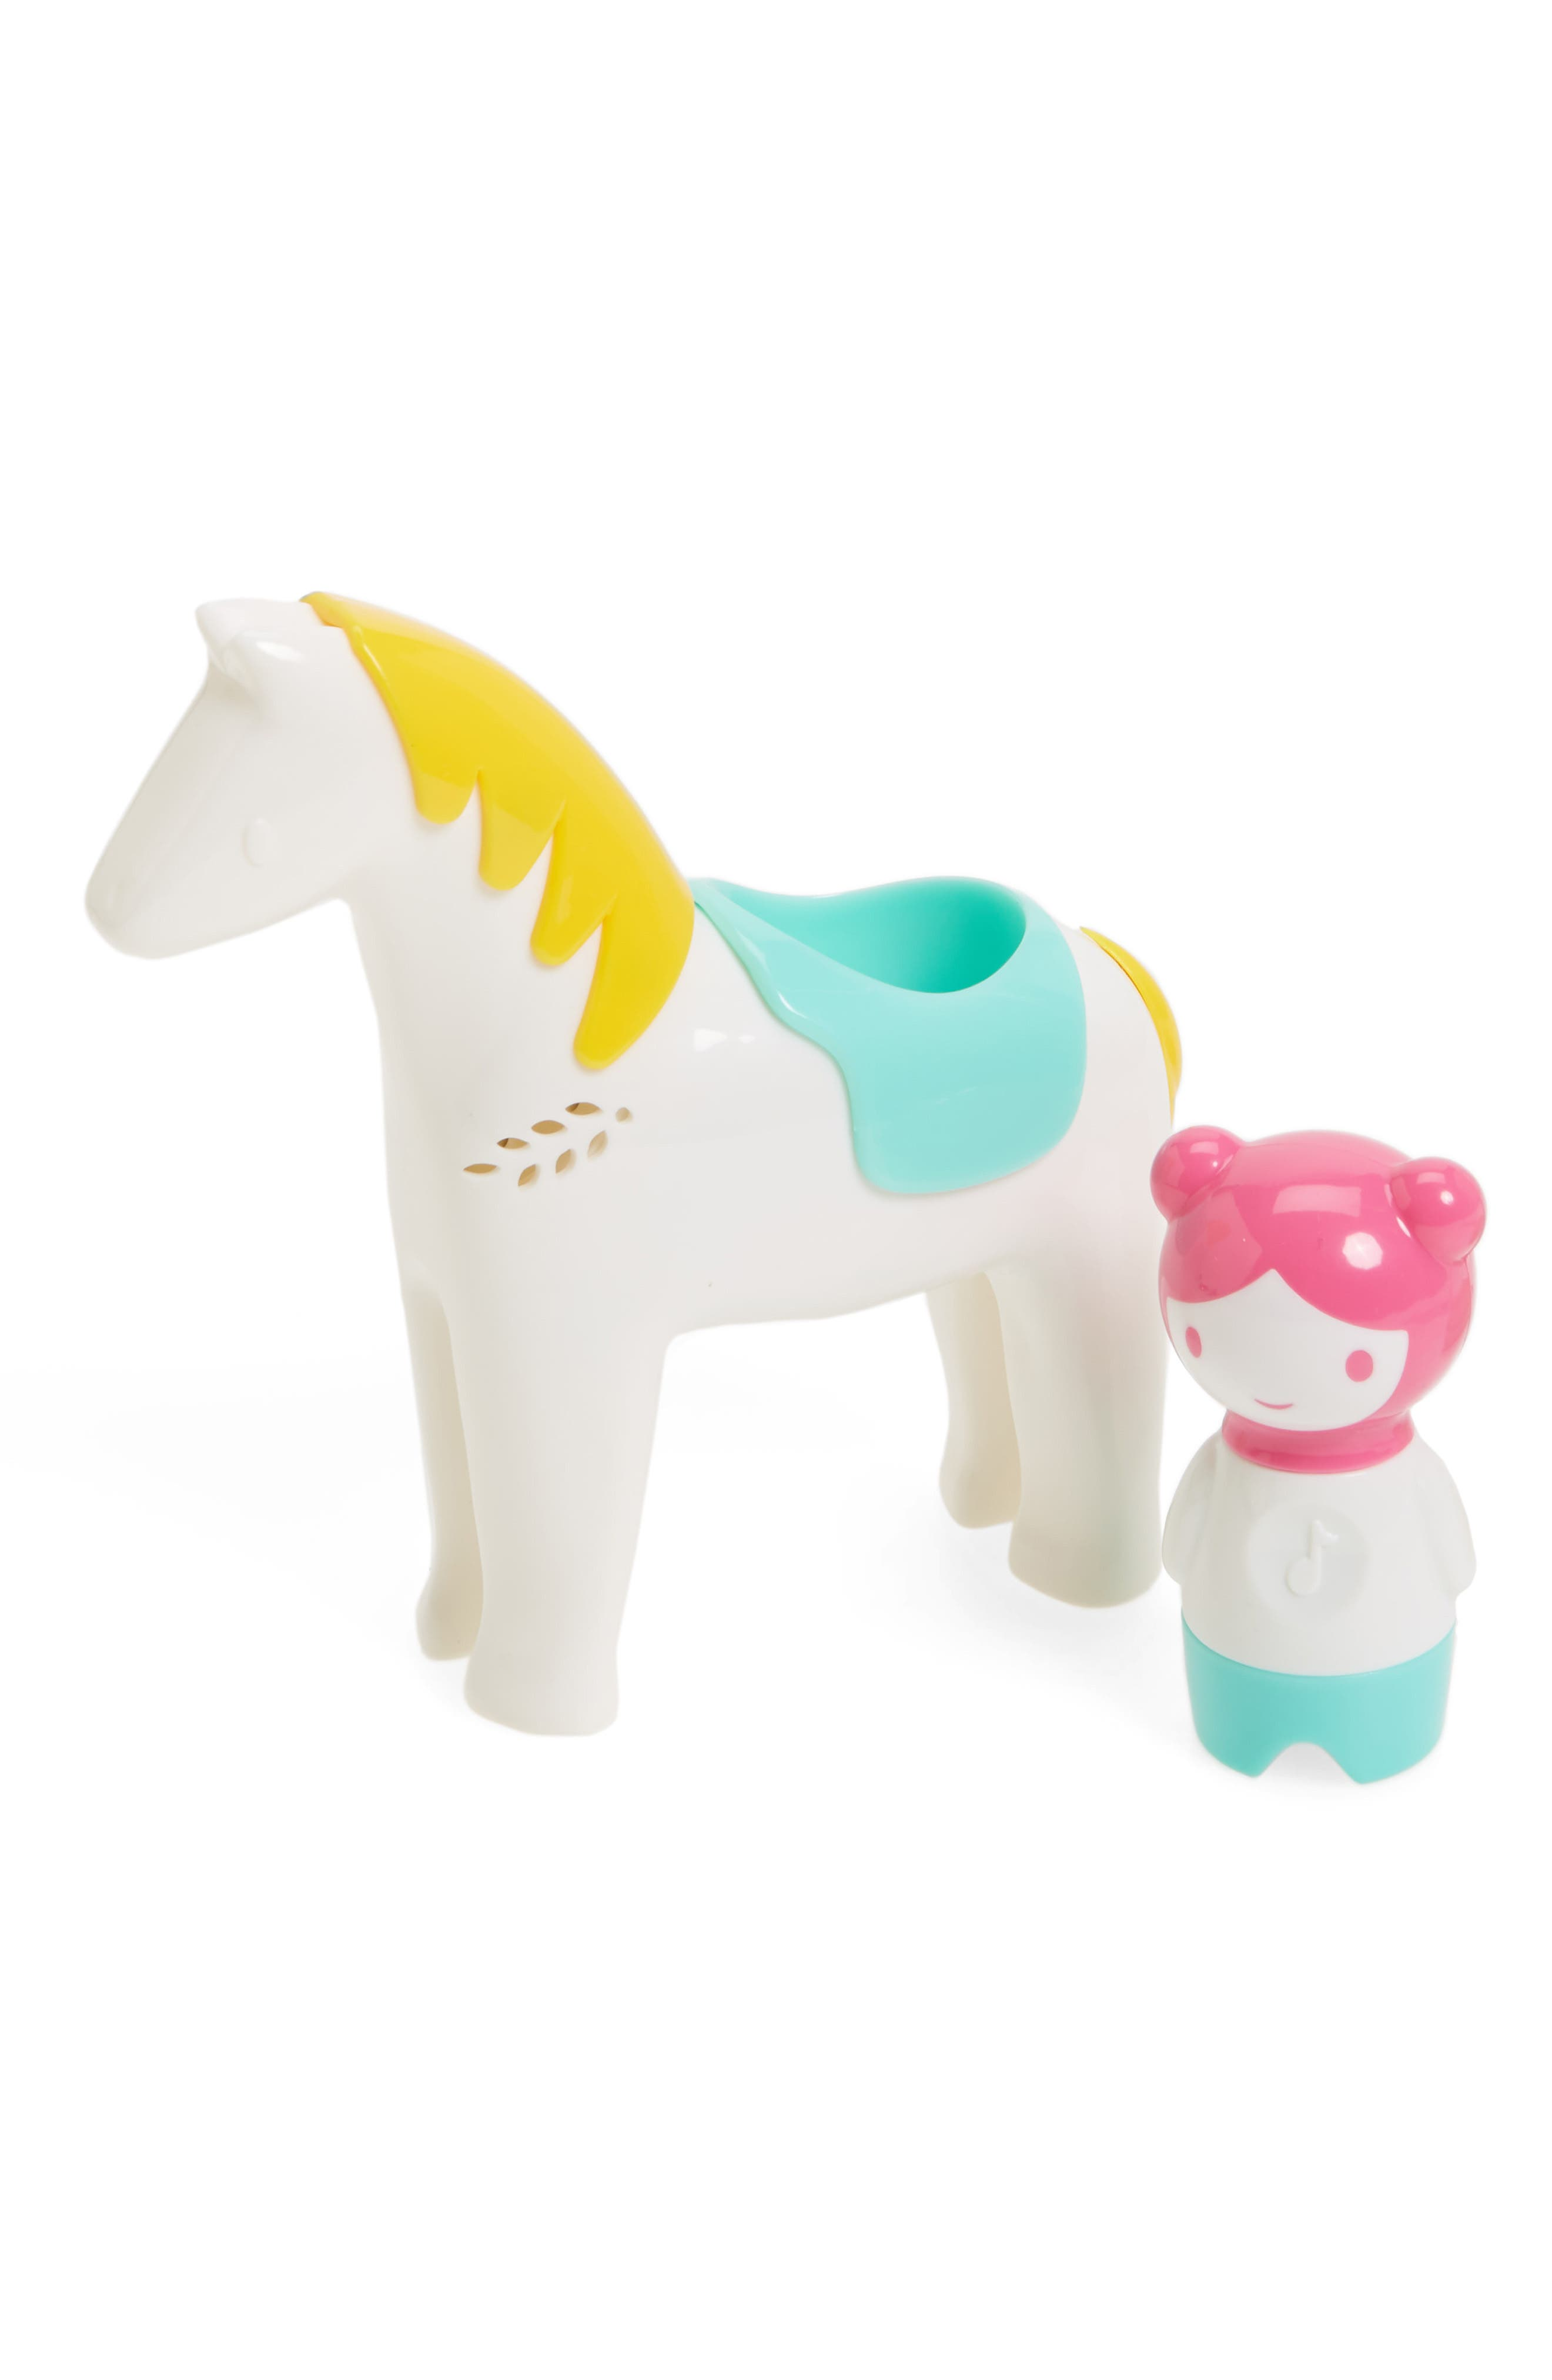 Myland<sup>™</sup> Horse Toy Set,                             Main thumbnail 1, color,                             160